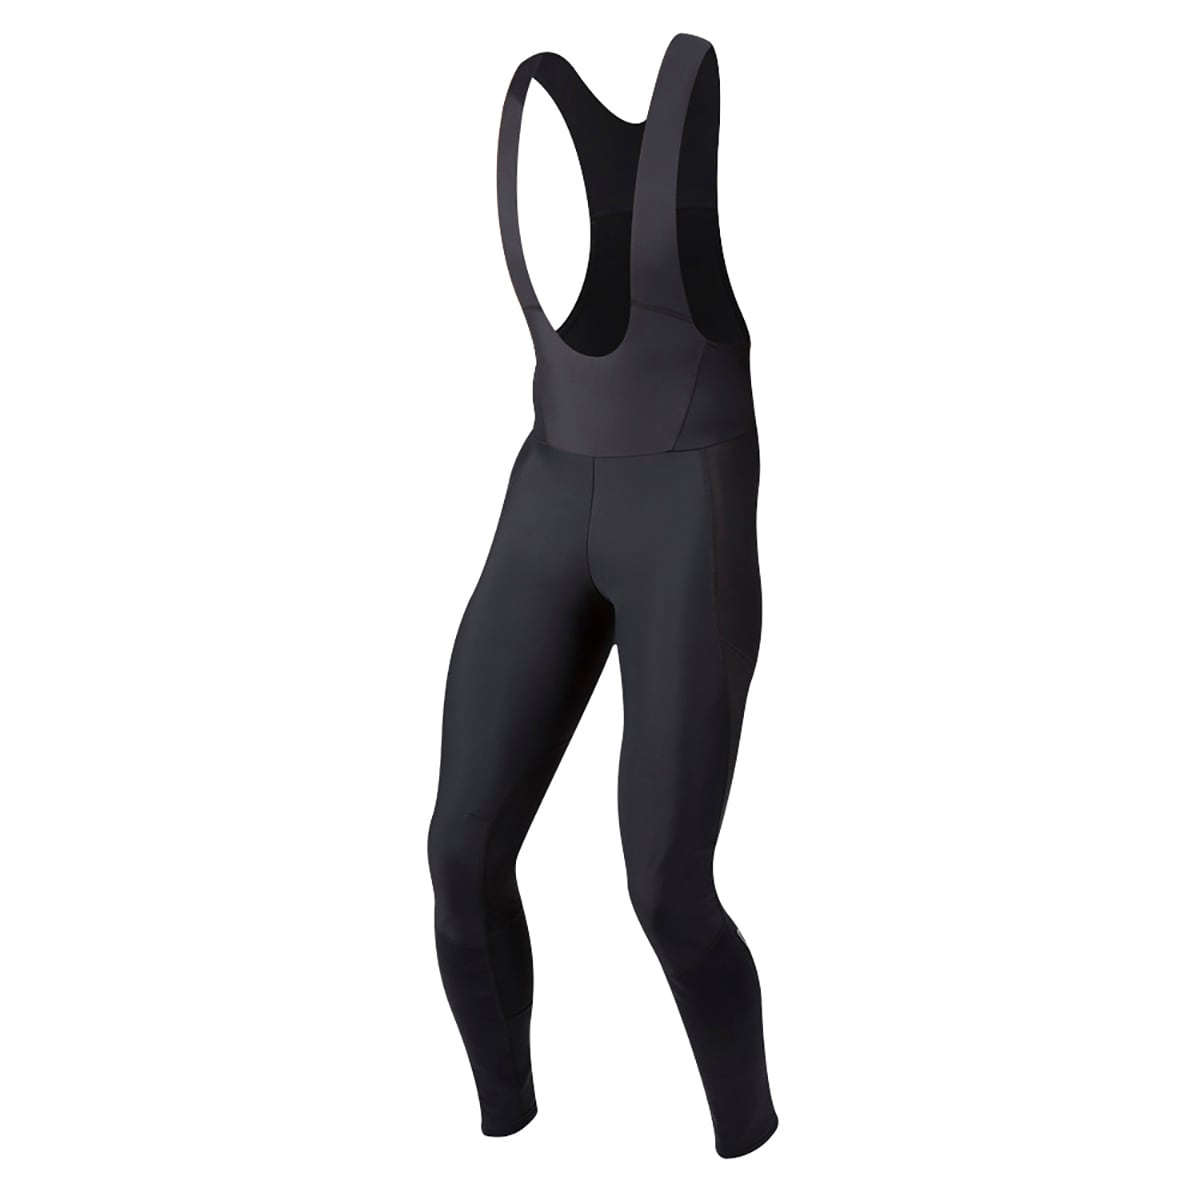 Pearl Izumi Byxa, Elite Escape AmFIB Bib Tight, Svart